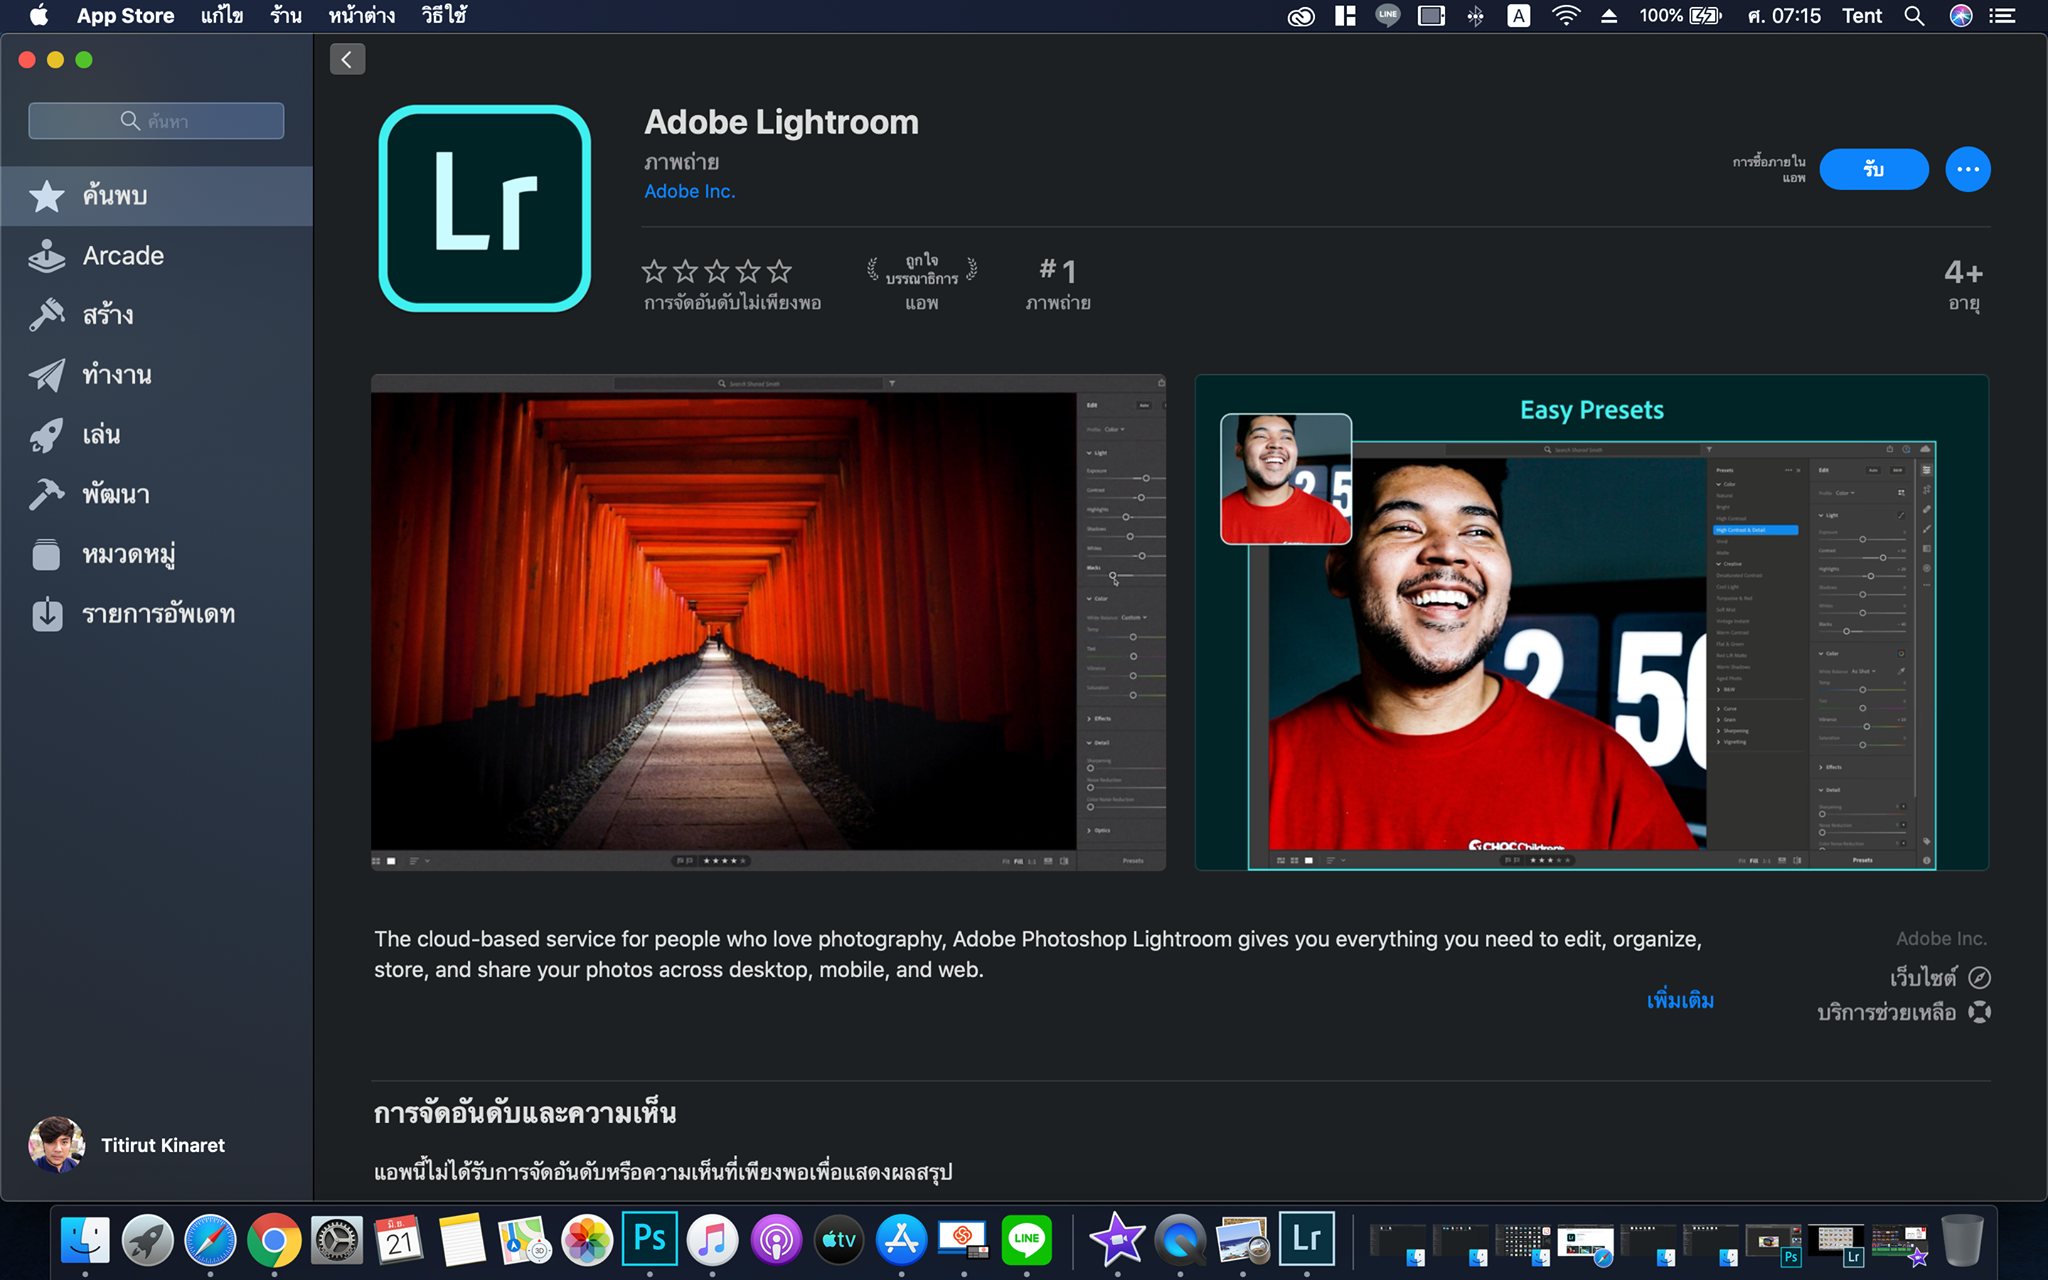 Adobe Lightroom Mac App Store Img 1